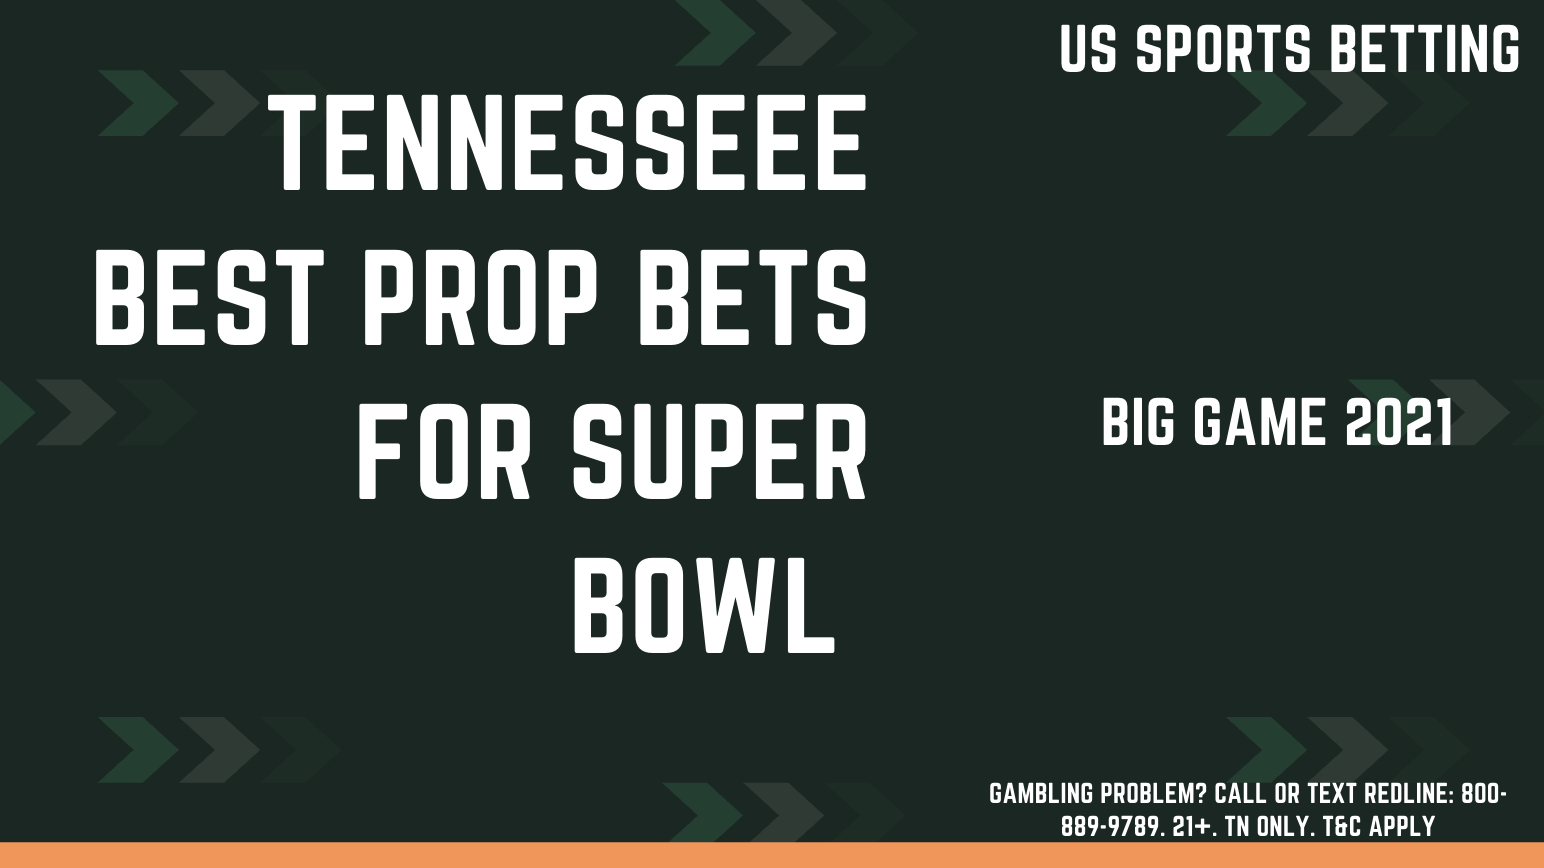 ut coin betting